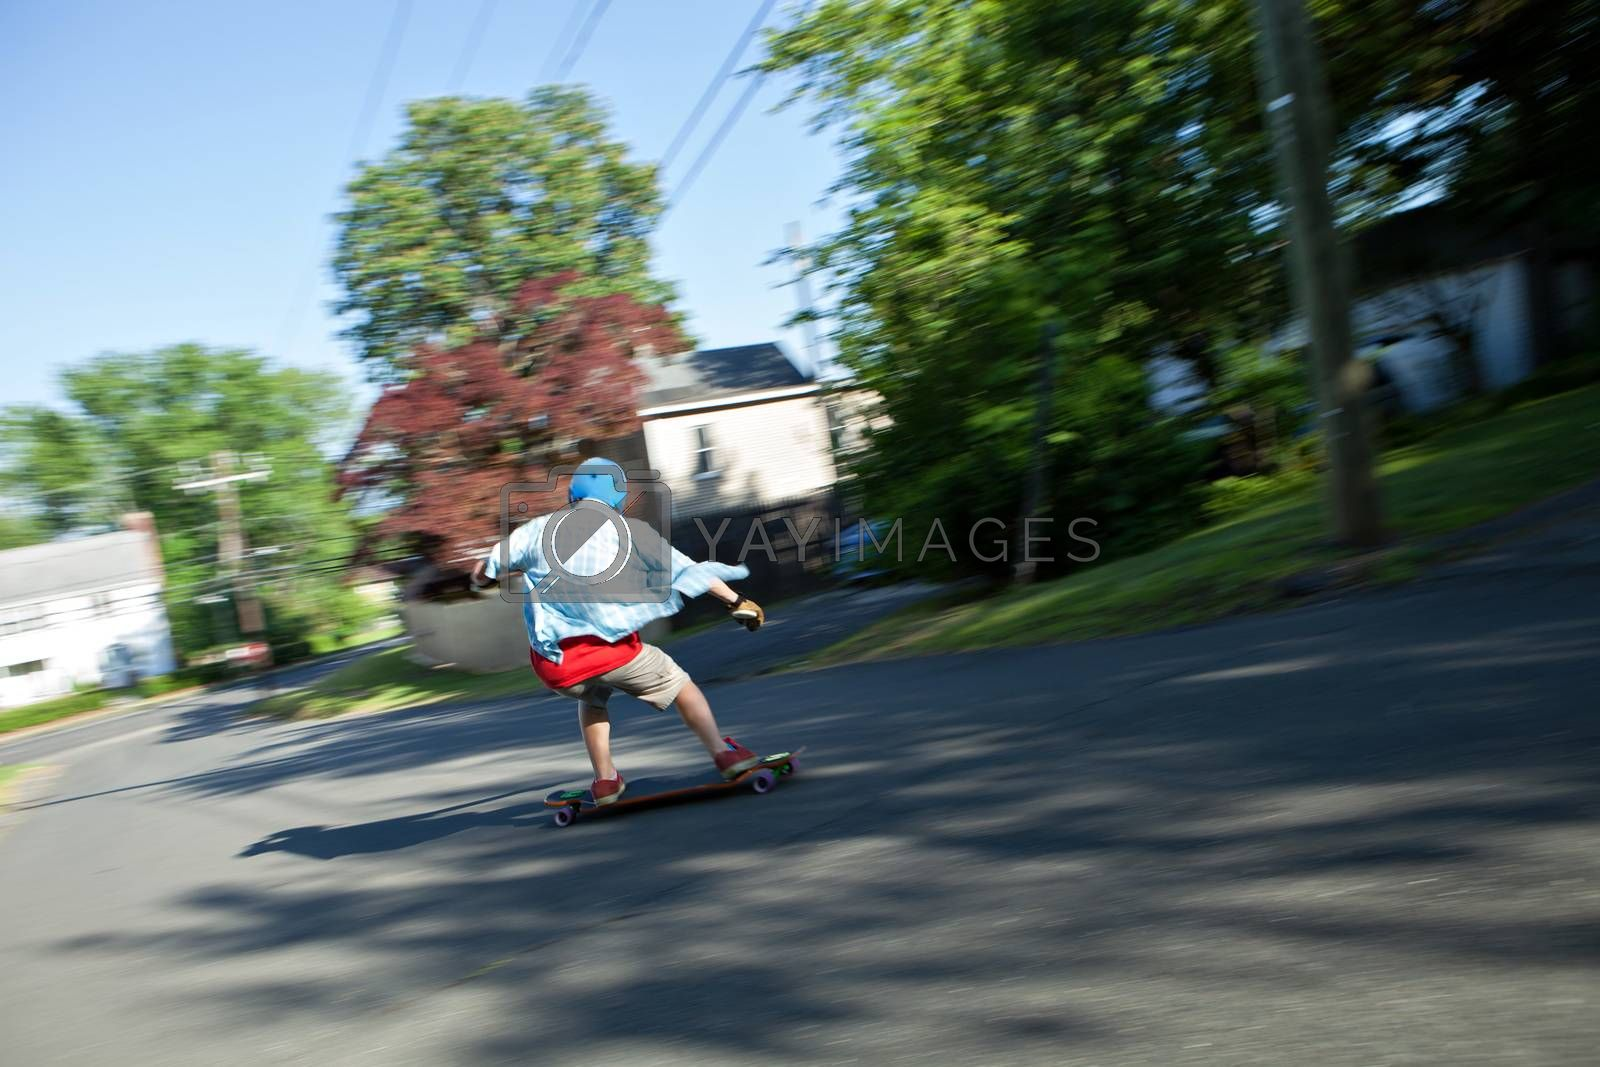 Longboarder skating on an urban road. Slight motion blur from panning technique to capture movement.